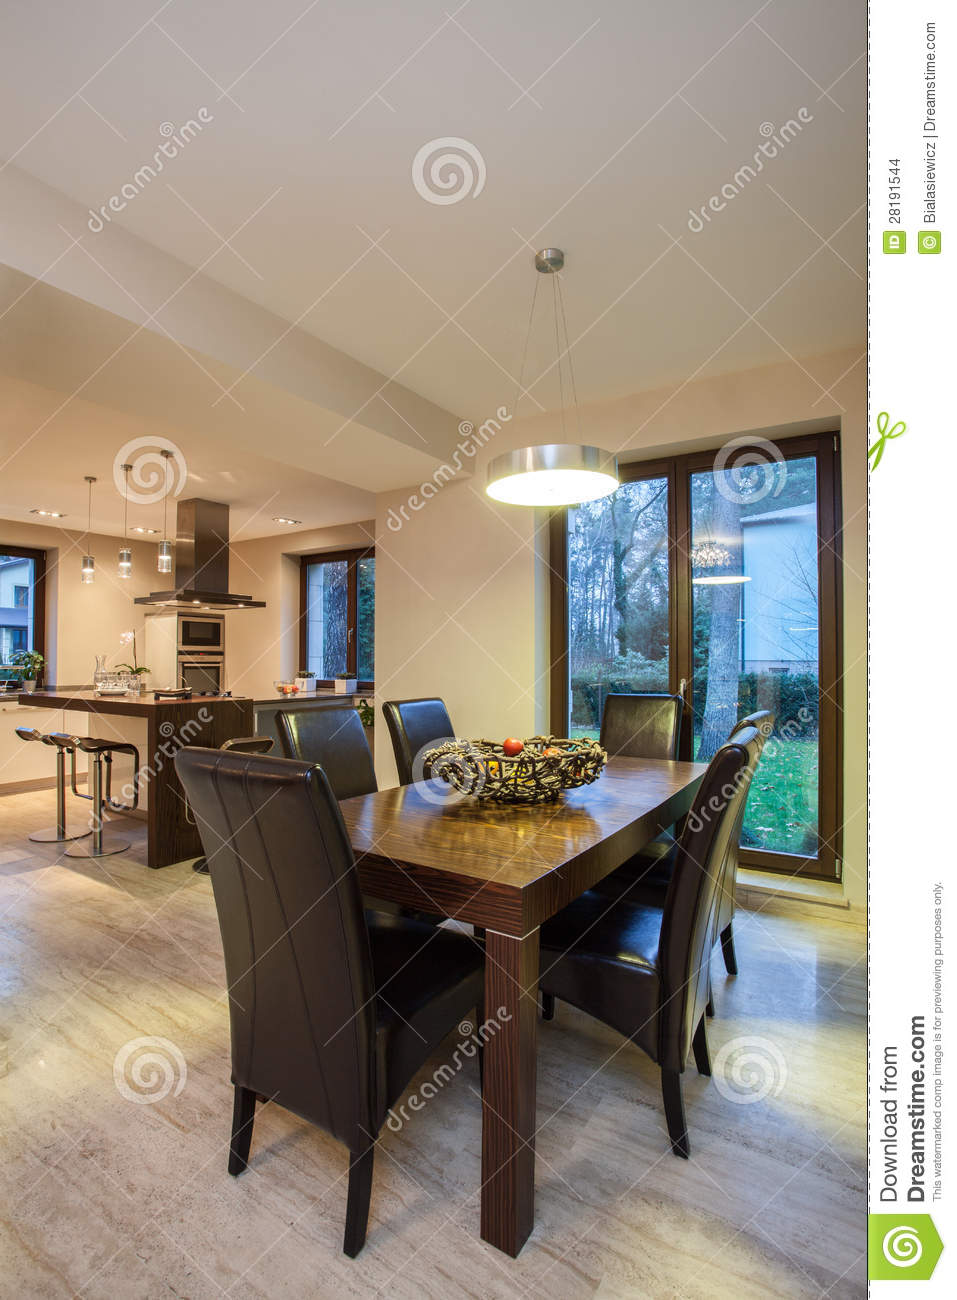 travertine house - decoration in interior stock images - image